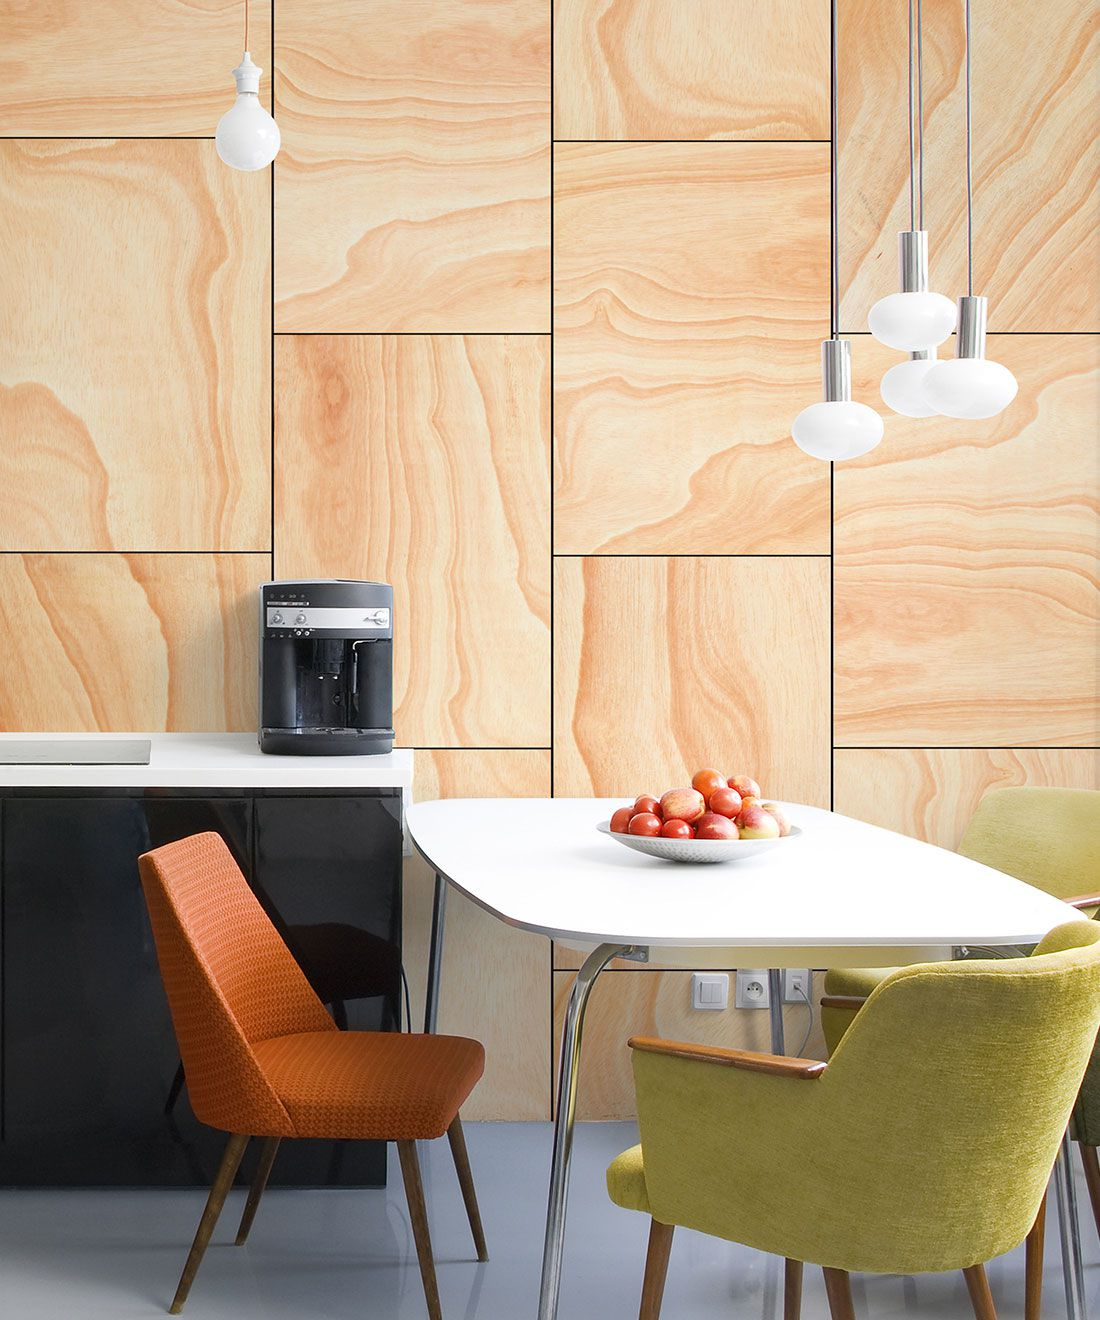 Ply Wood Wallpaper • Light Brown Wallpaper • Wood Grain Wallpaper insitu with an orange chair, green chait around a white table